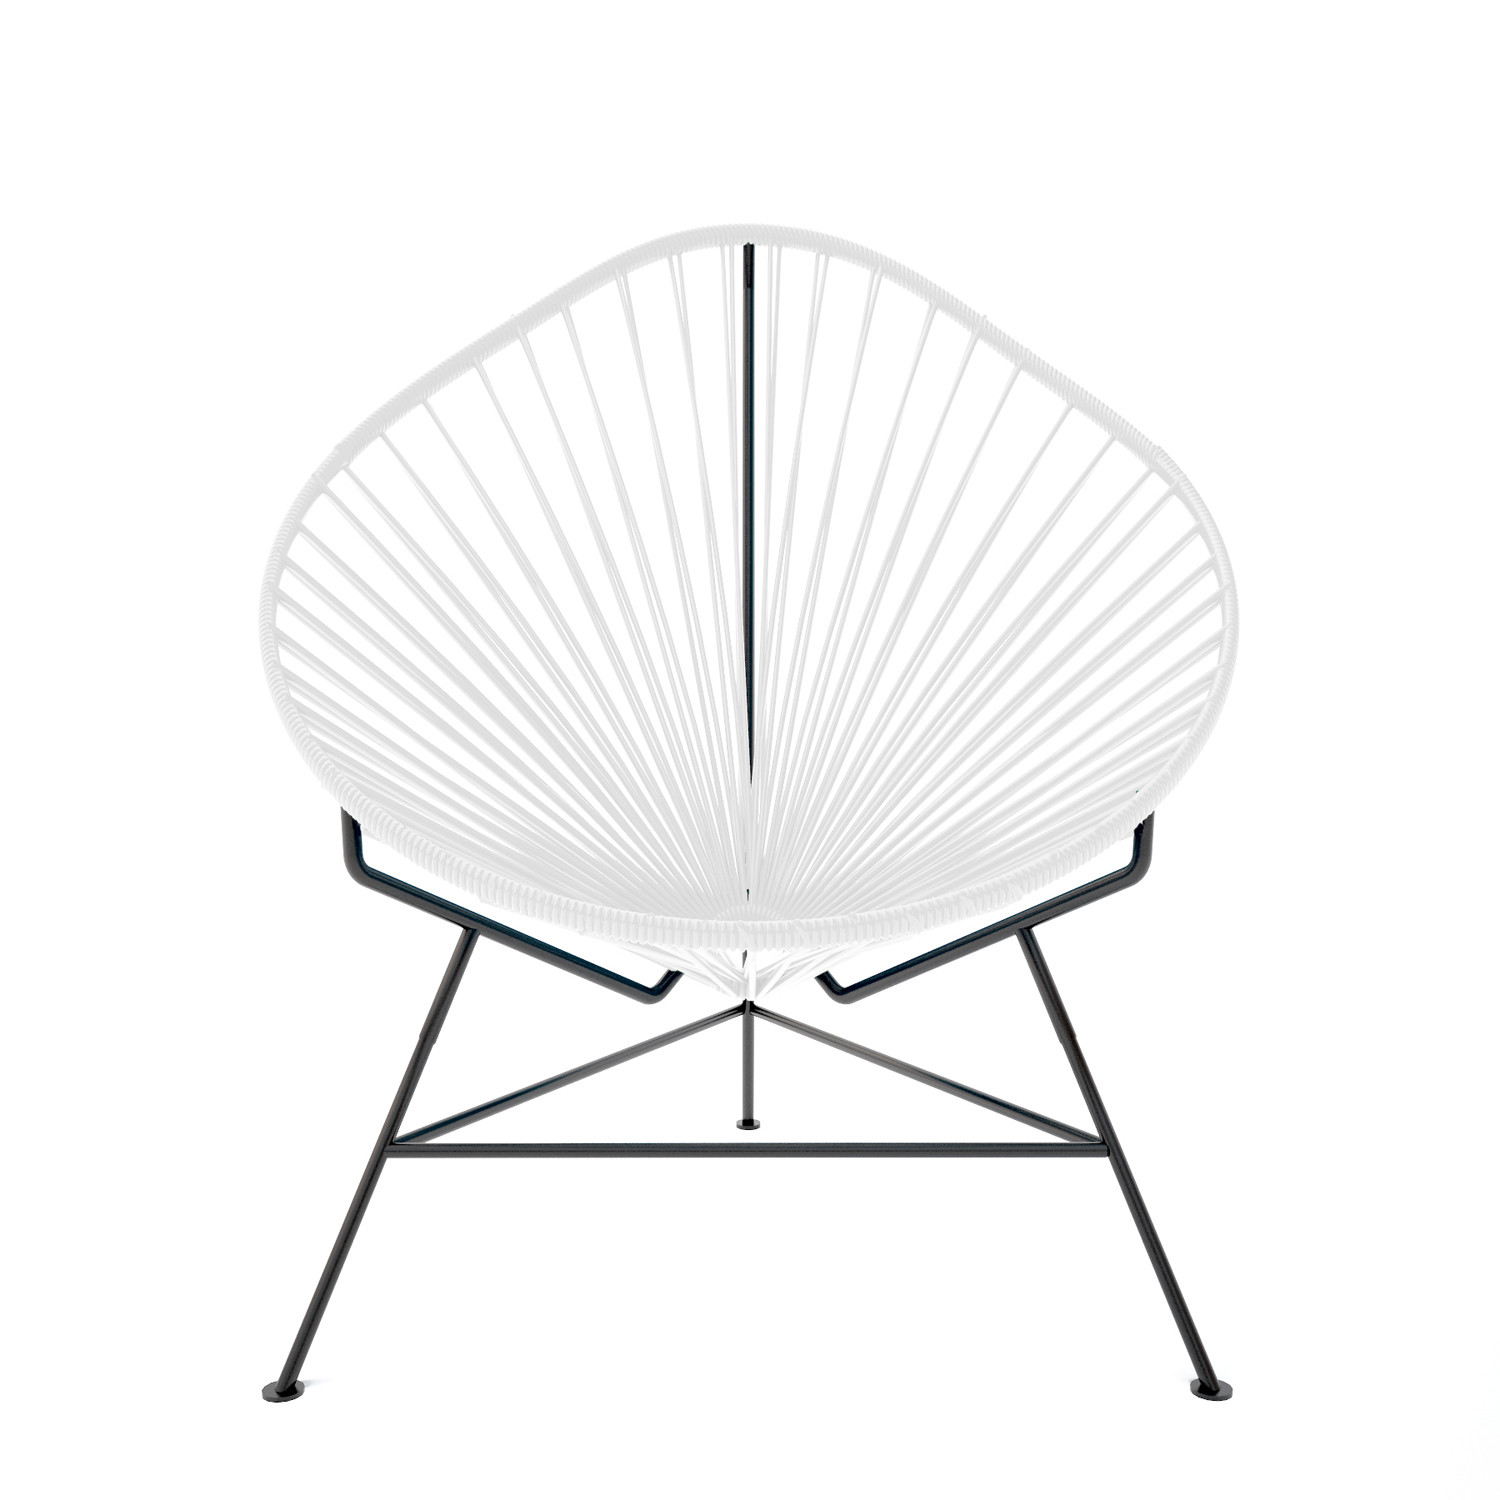 innit acapulco chair j&f covers dublin white weave on black frame touch of modern medium